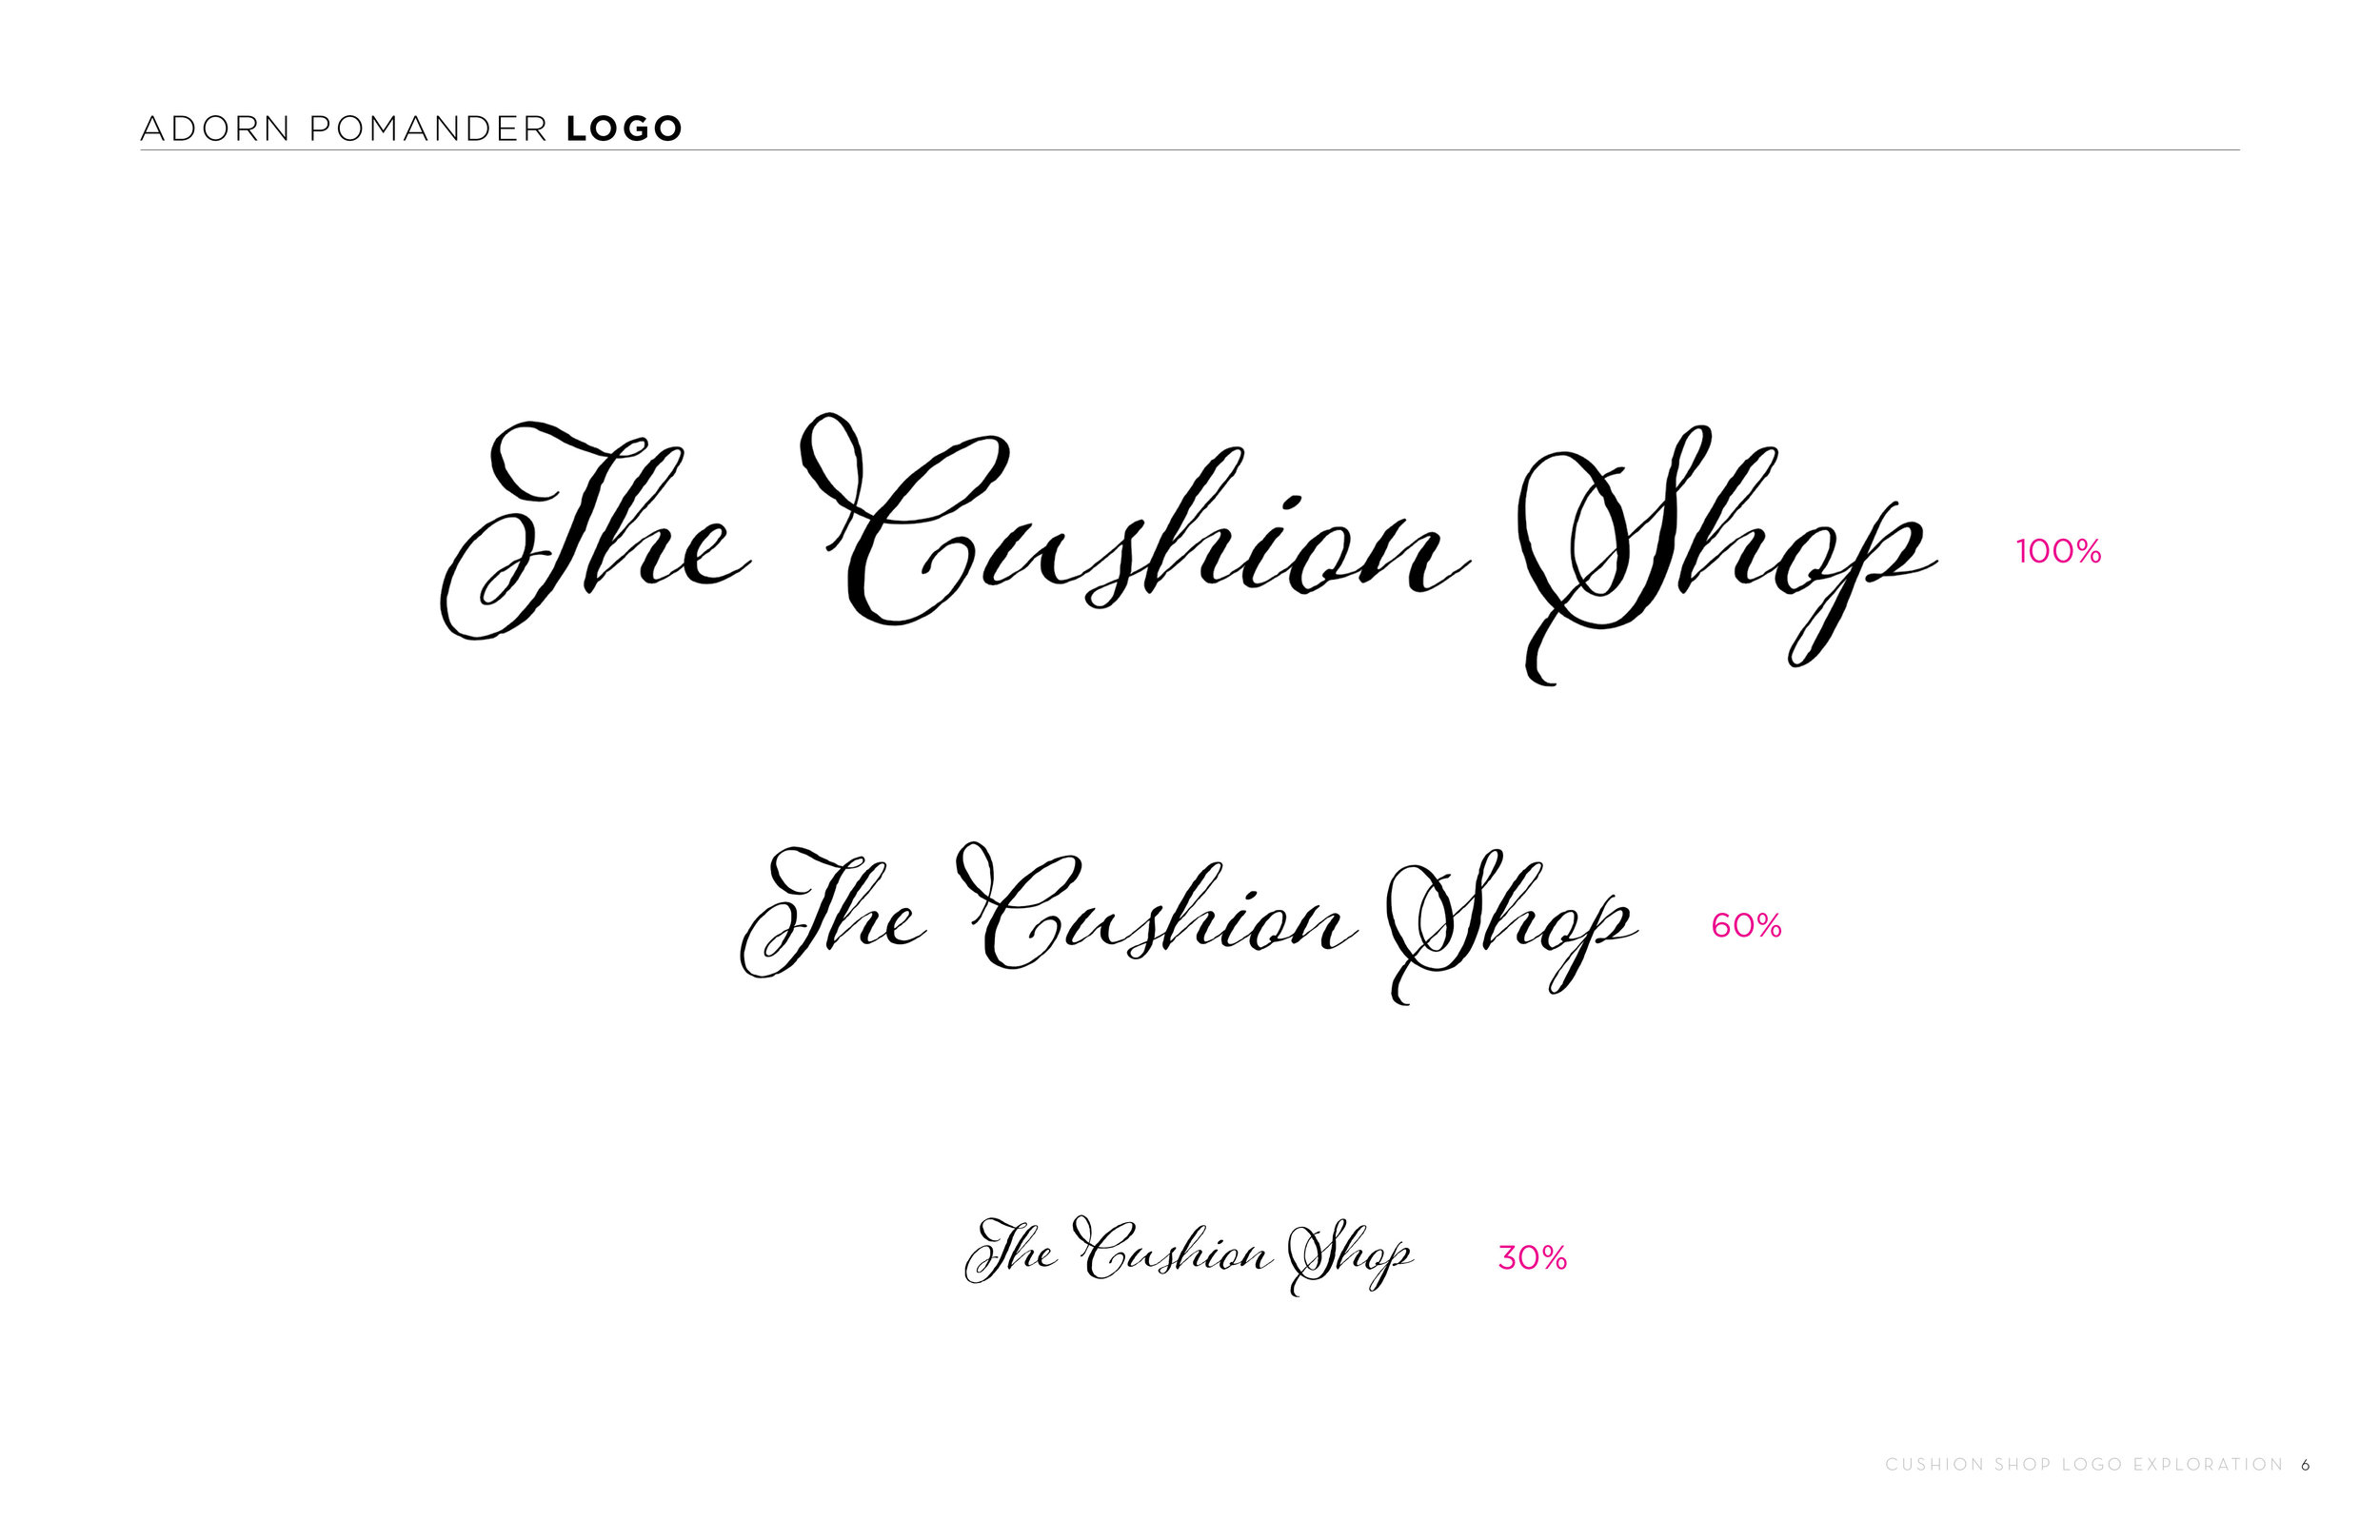 Cushion Shop_Logo Concepts_R10_6.jpg